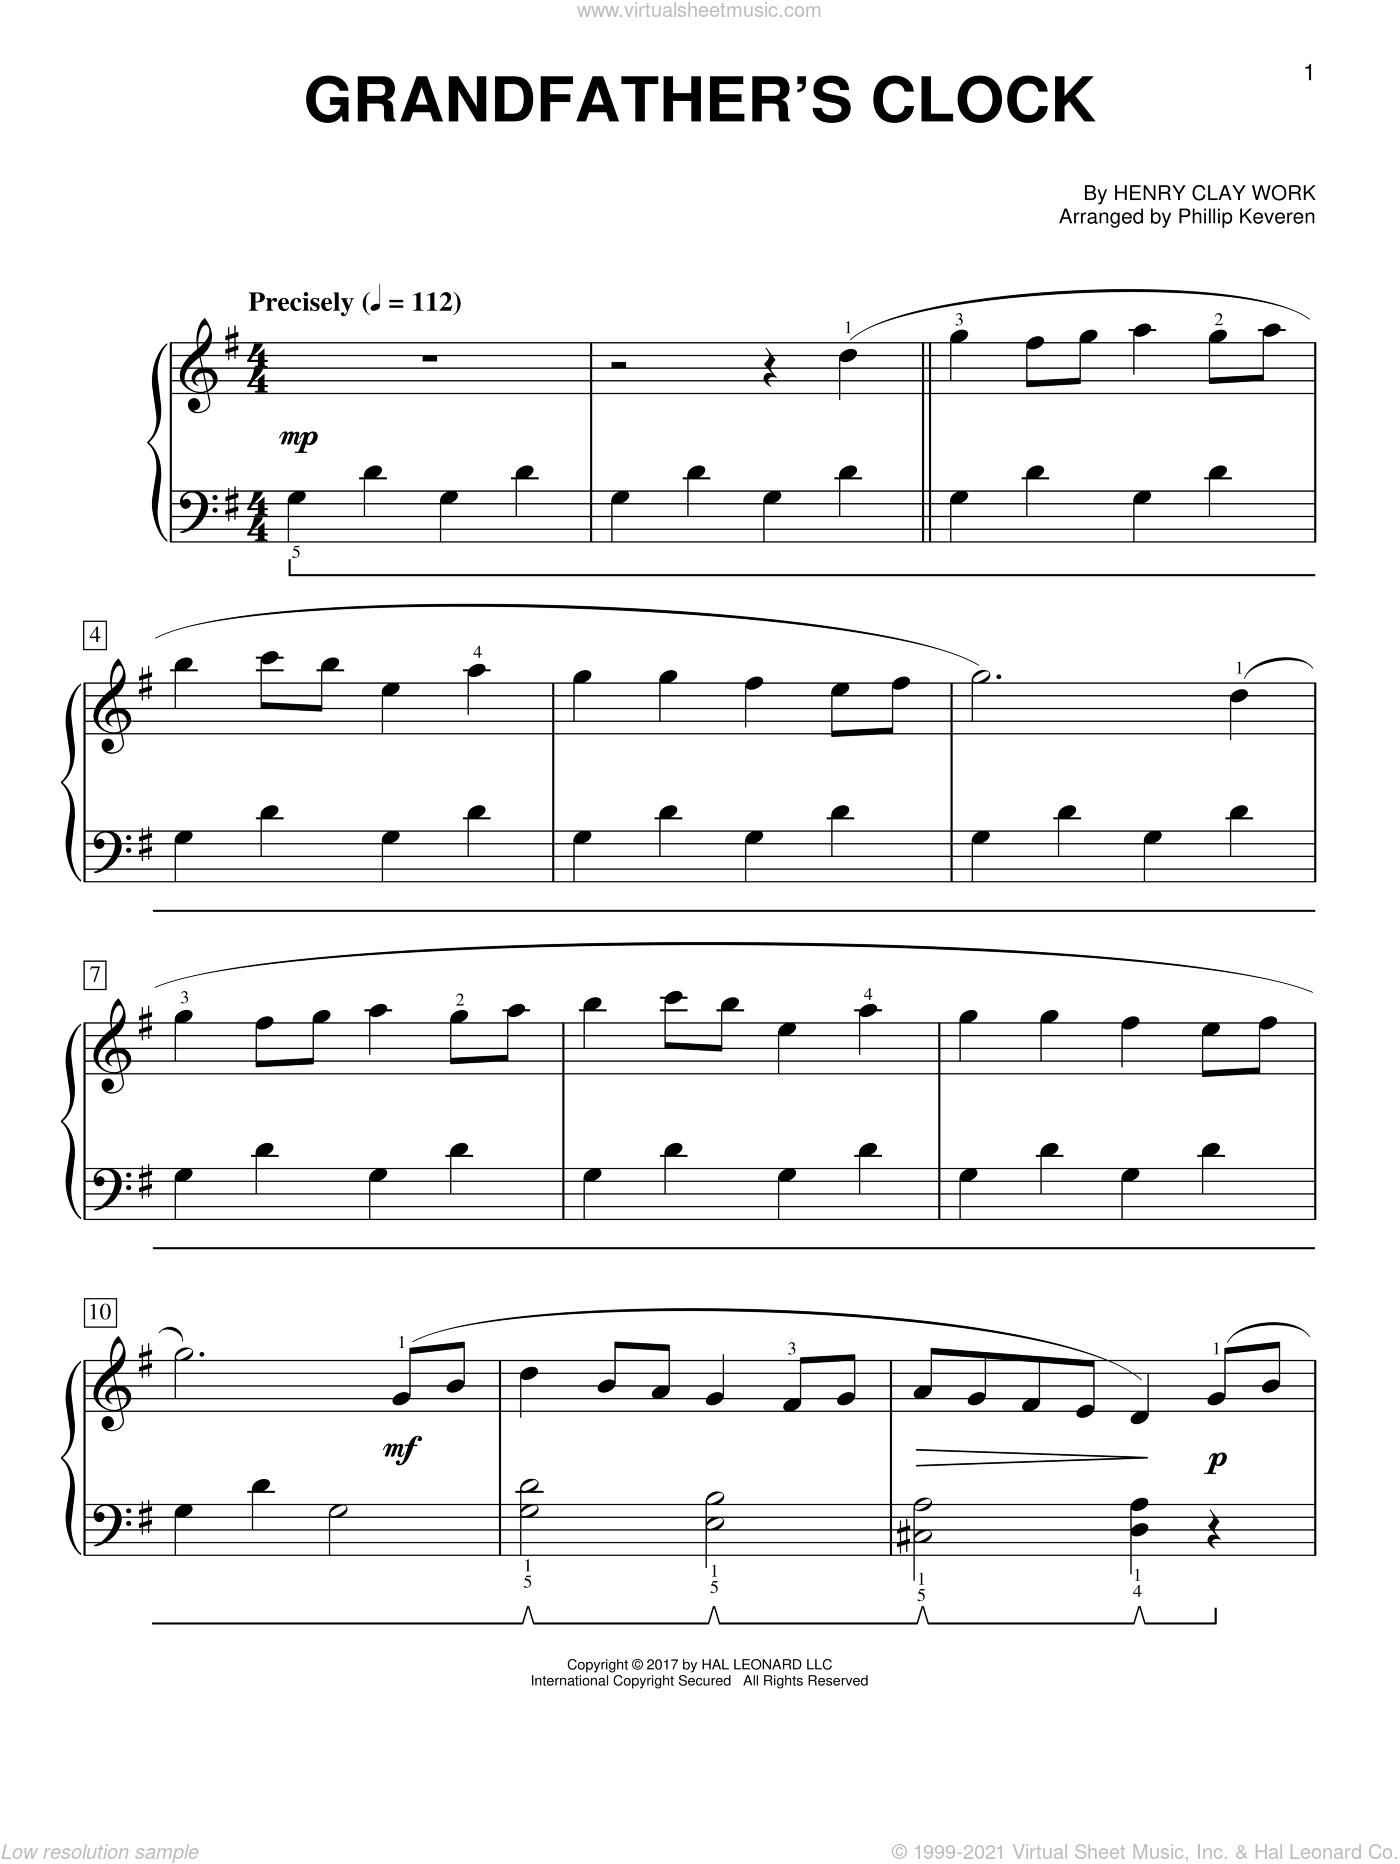 Grandfather's Clock sheet music for piano solo by Henry Clay Work and Phillip Keveren, easy. Score Image Preview.